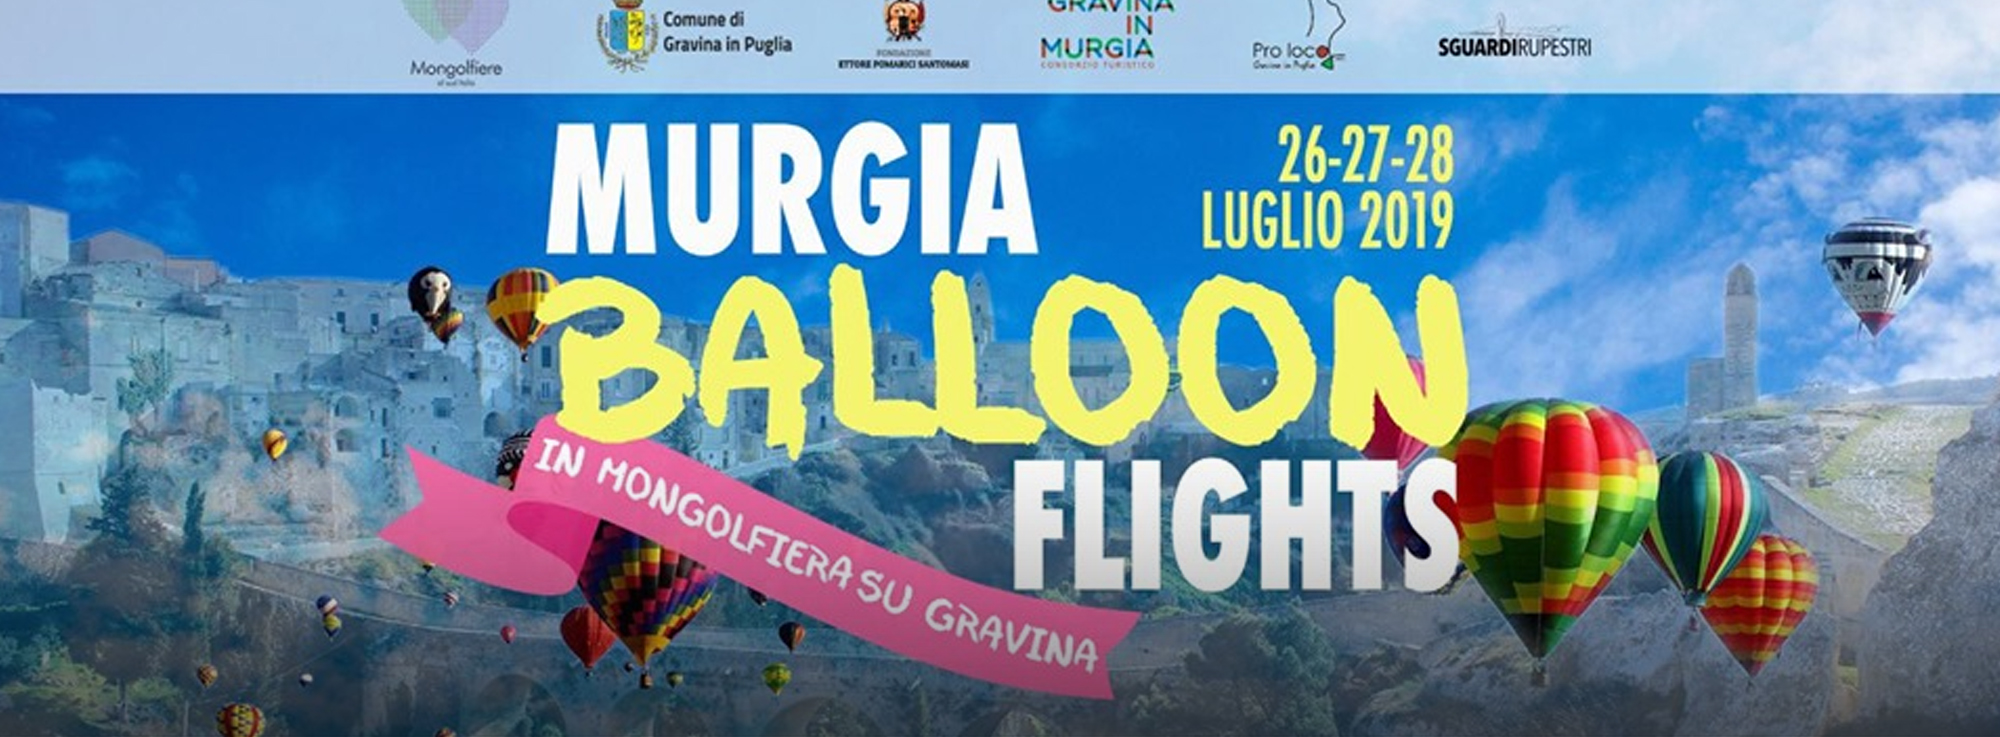 Gravina in Puglia: Murgia Balloon Flights